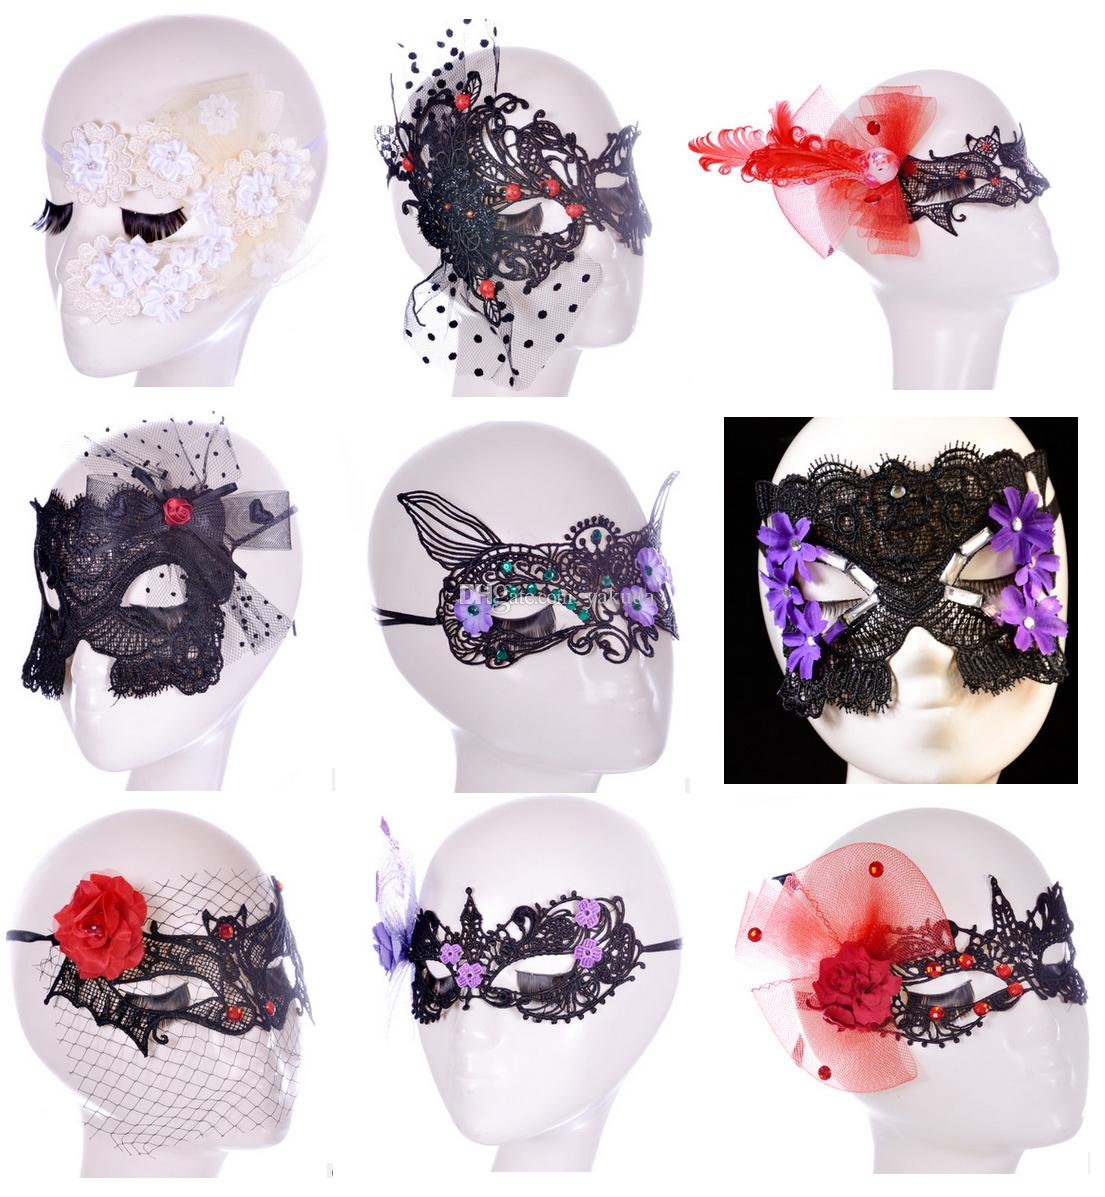 Hot selling models,handmade lace eye mask sexy Catwoman party,nightclub dance mask,theme party mask,Sexy lace,Easter party Ladies Half mask